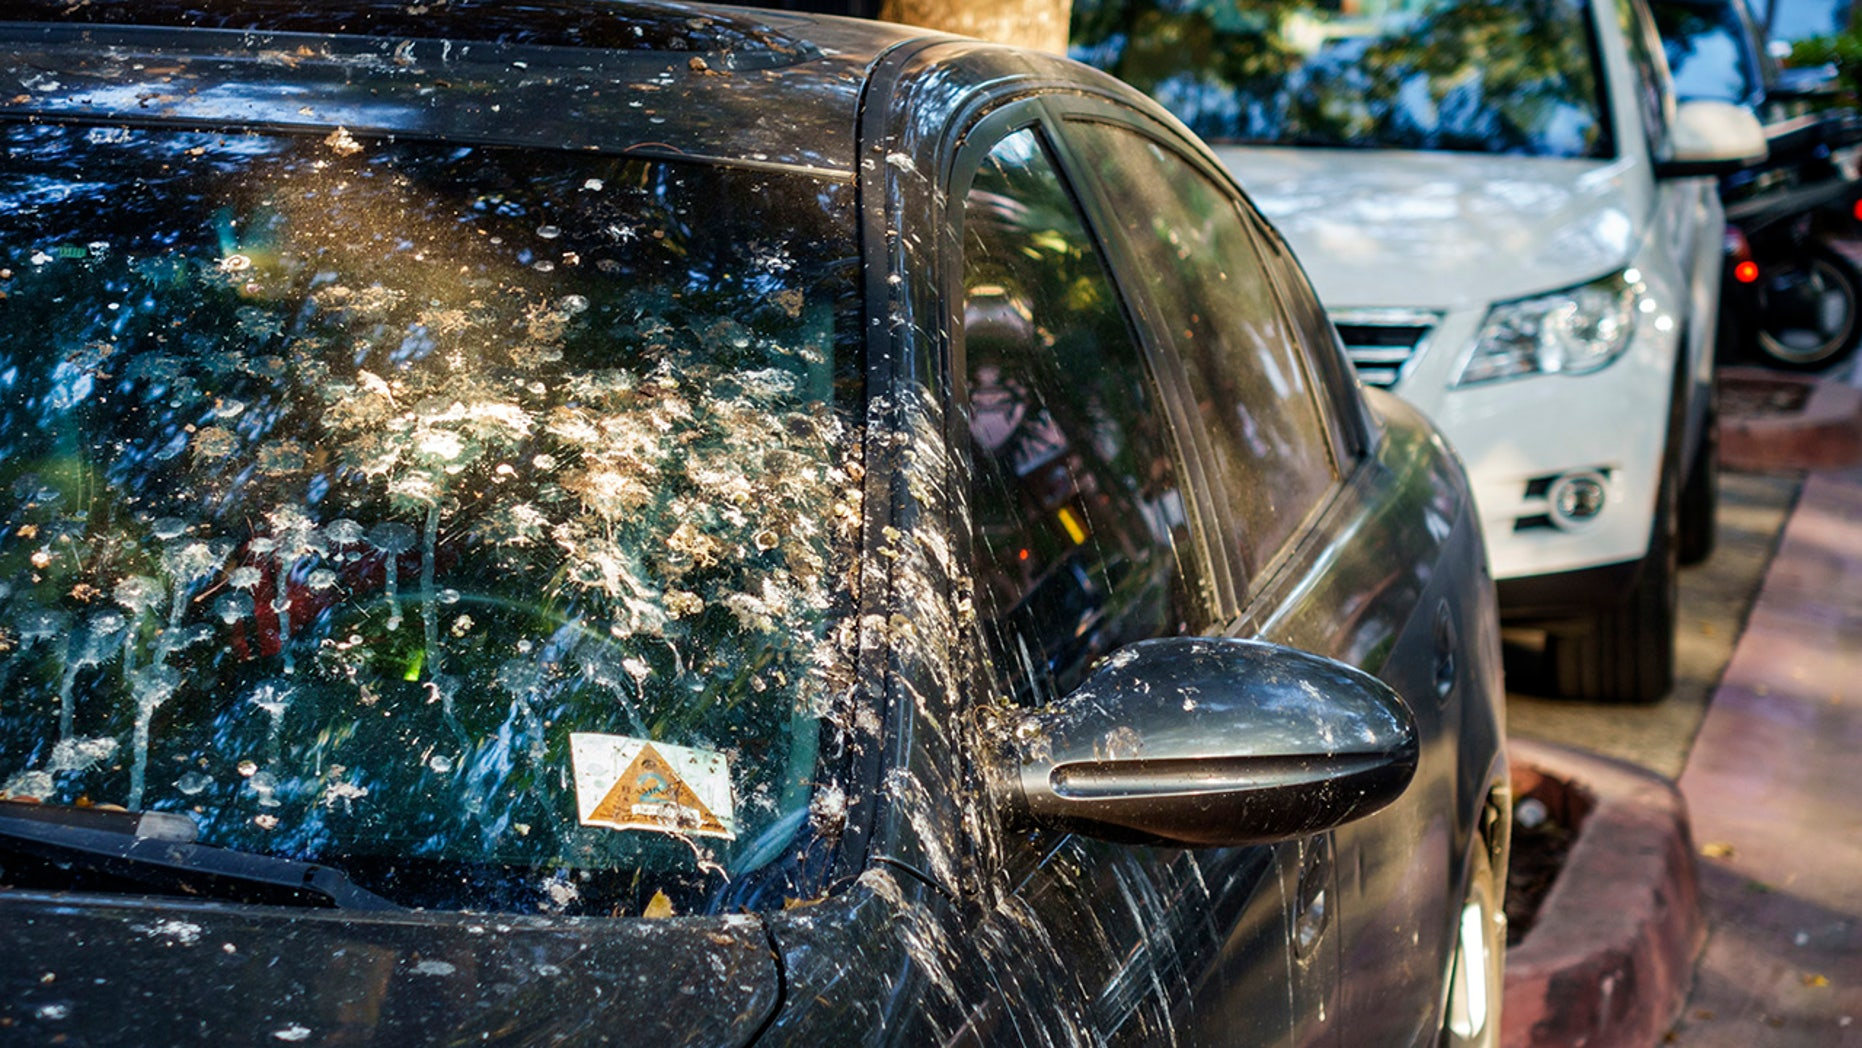 The next time this happens to your car, best to clean it off quickly.